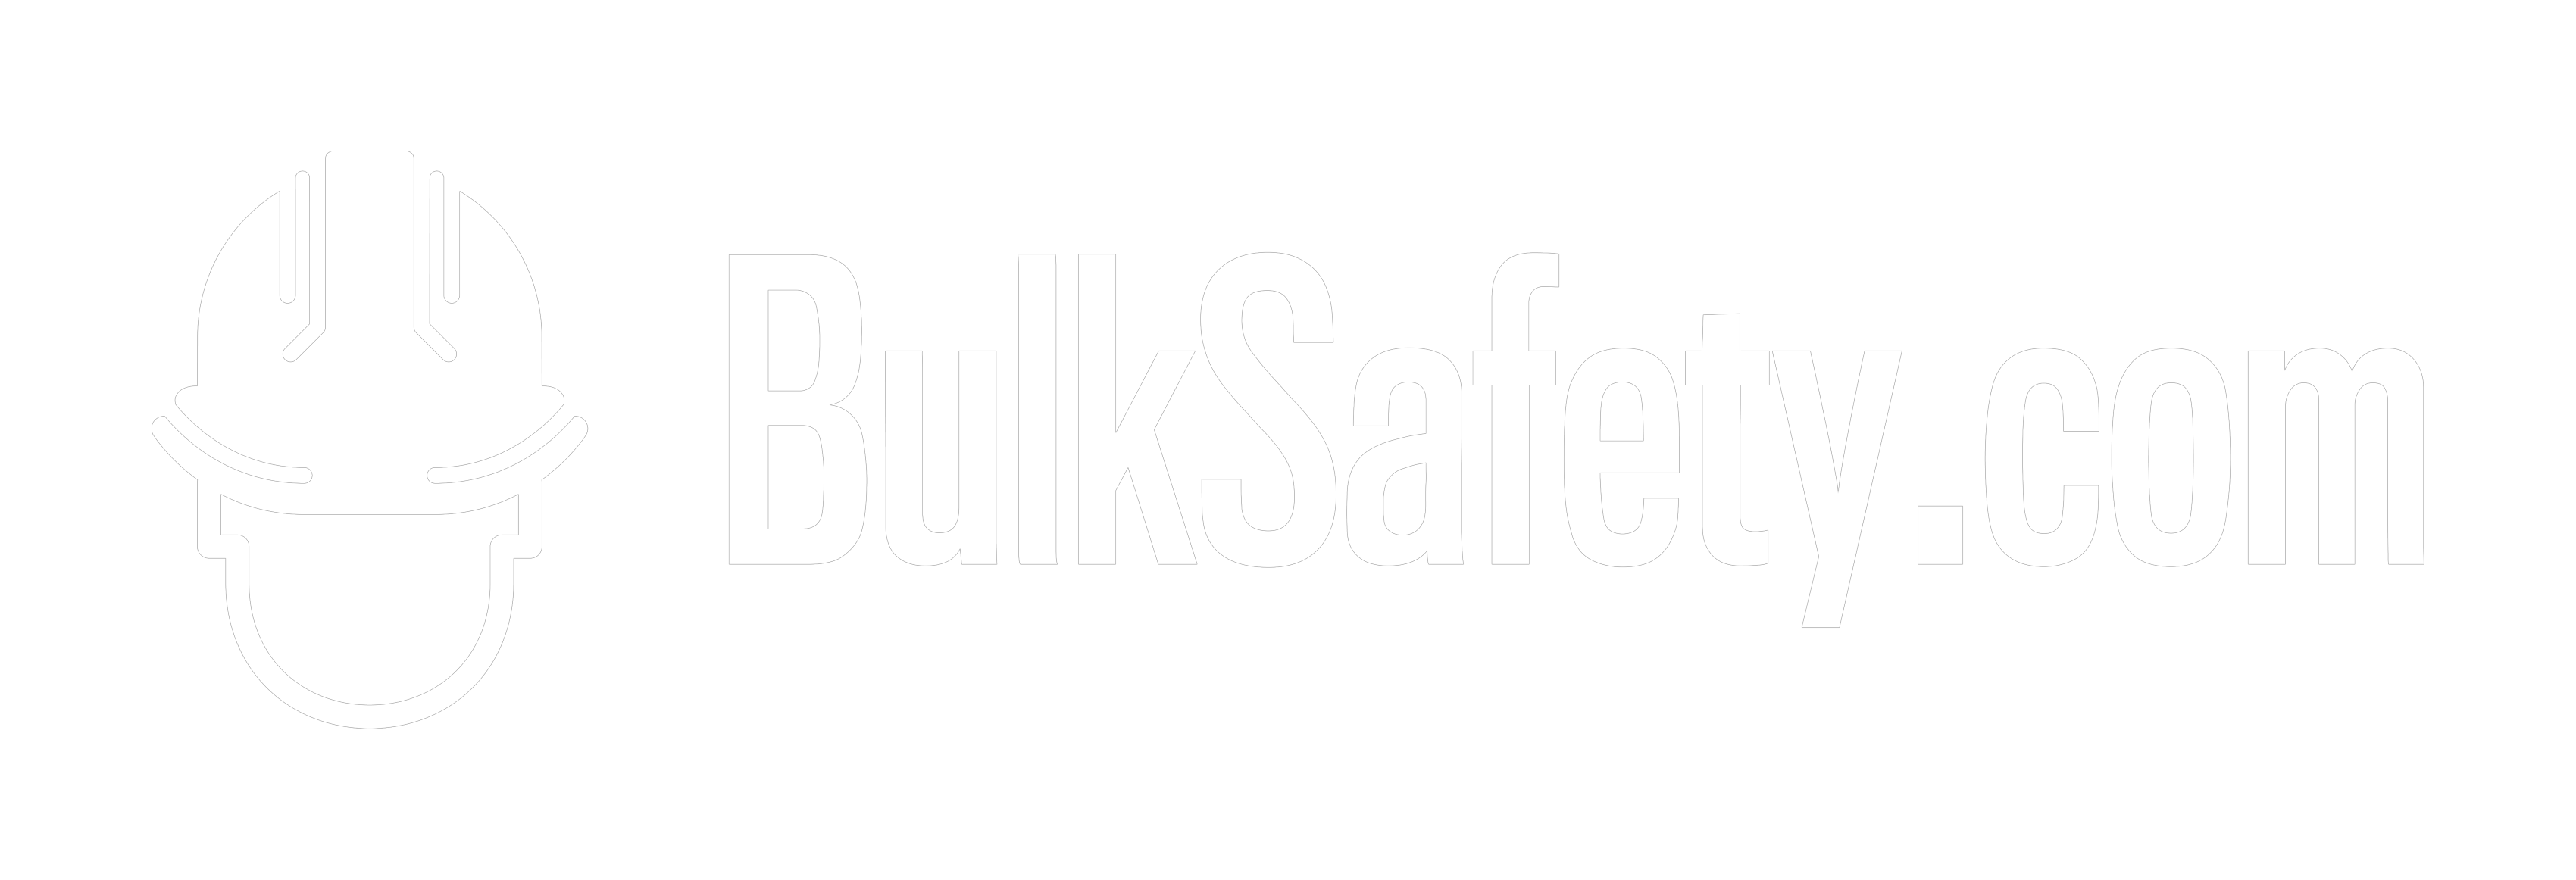 BulkSafety.com